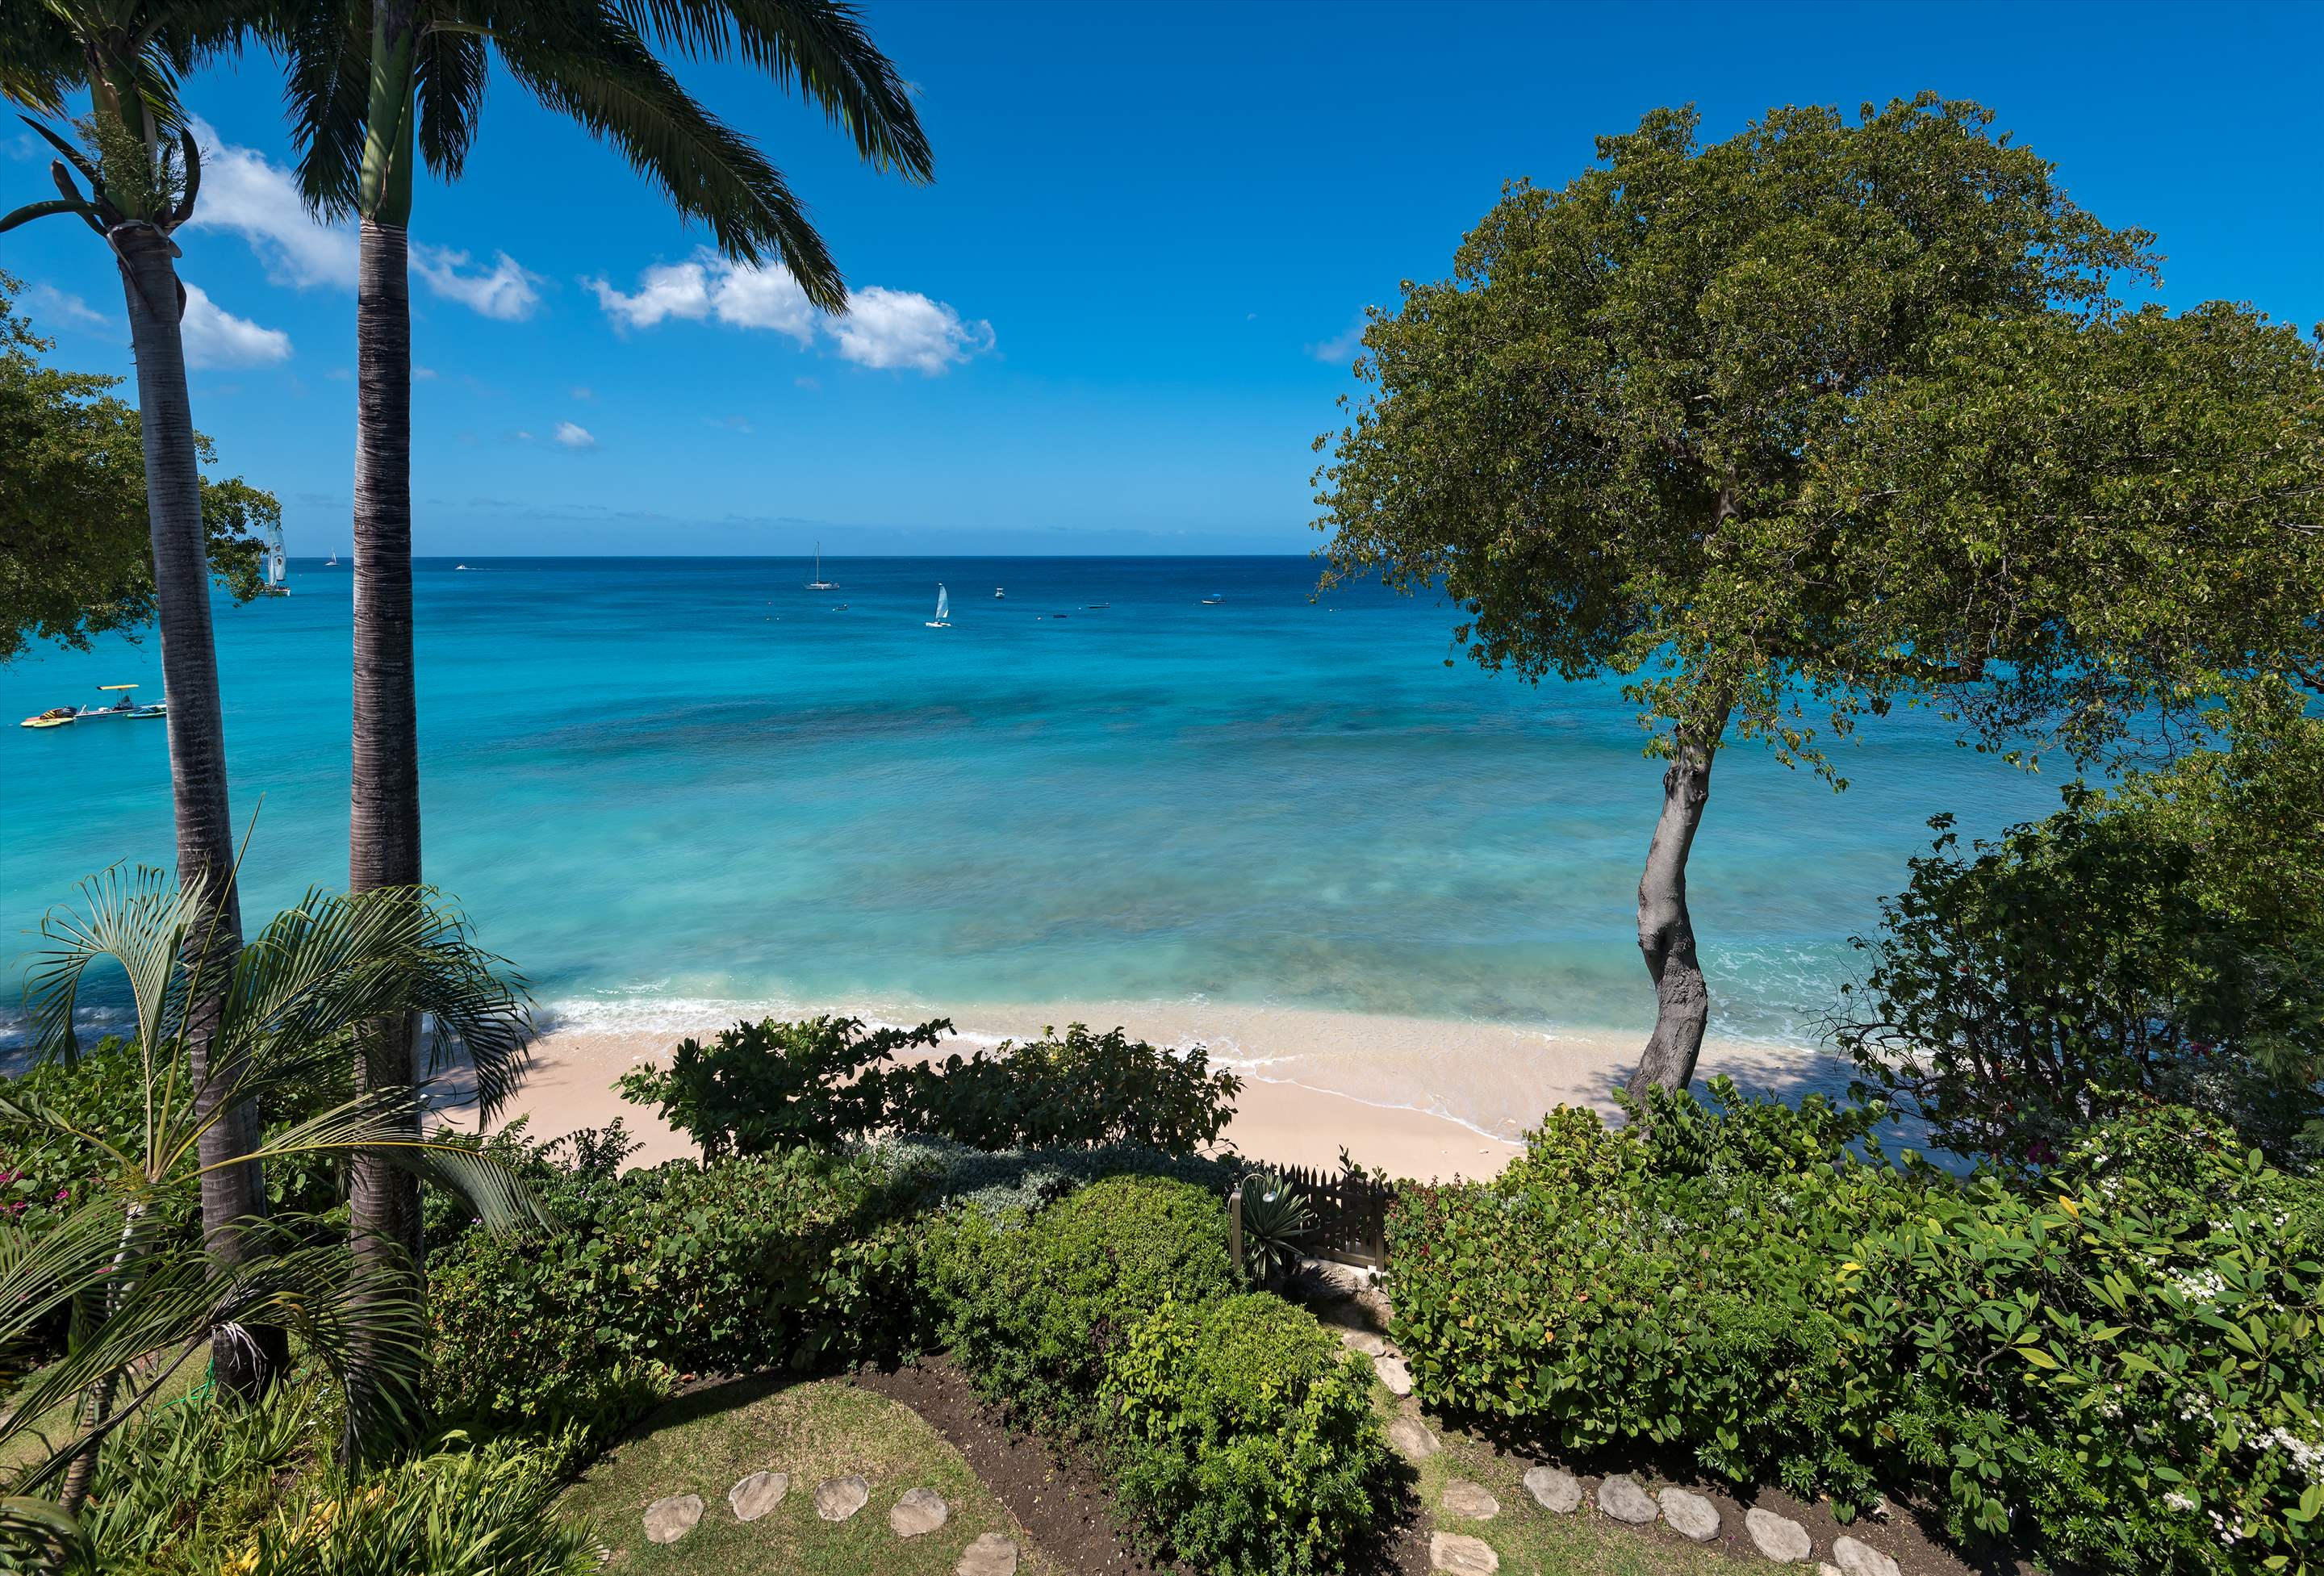 Fathom's End, 3 bedroom villa in St. James & West Coast, Barbados Photo #6